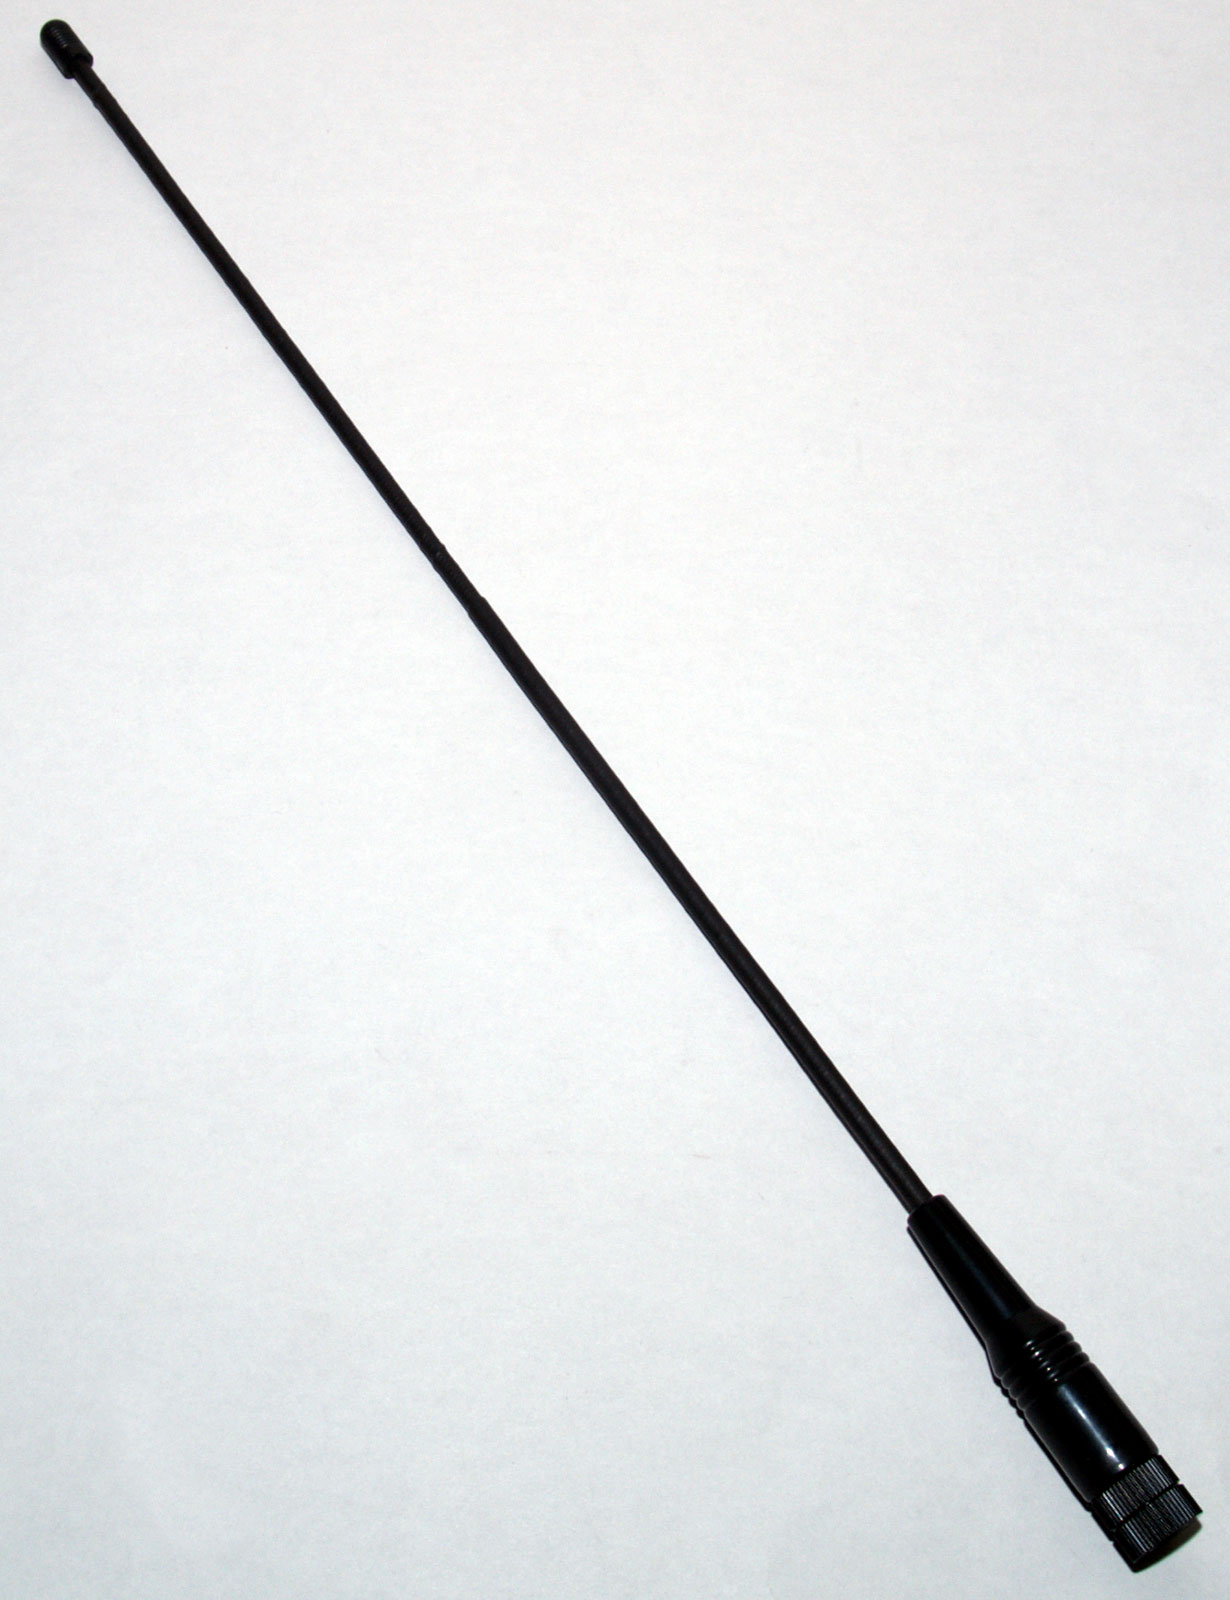 380 mm Dualband 2m/70cm Antenna with SMA male connector